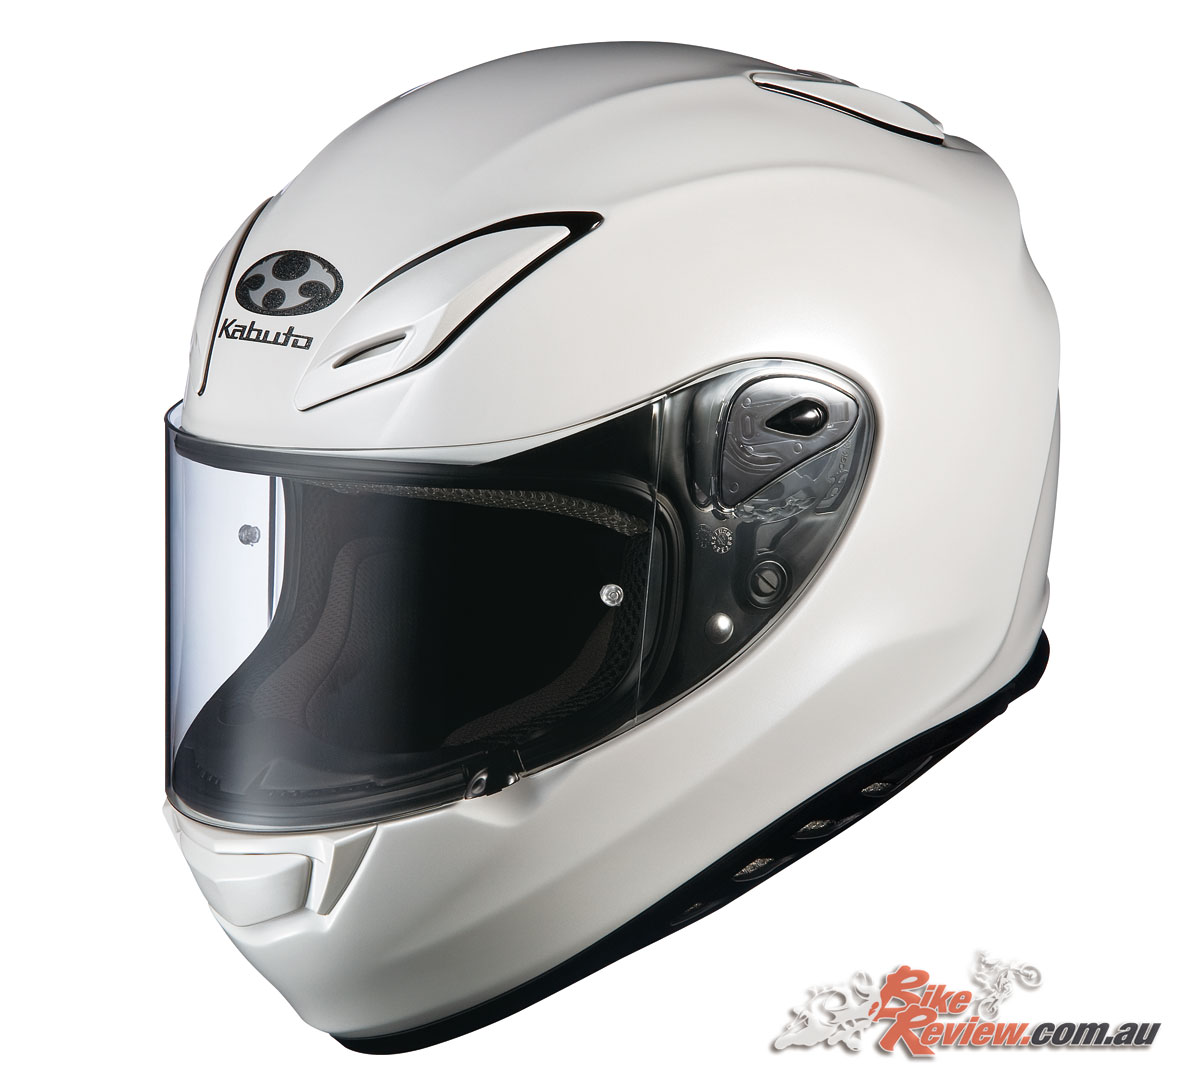 The Aeroblade-3 proved a huge success for Kabuto, while their helmets were a popular racers choice, offering a wide range of safety certification, allowing them to be used almost anywhere